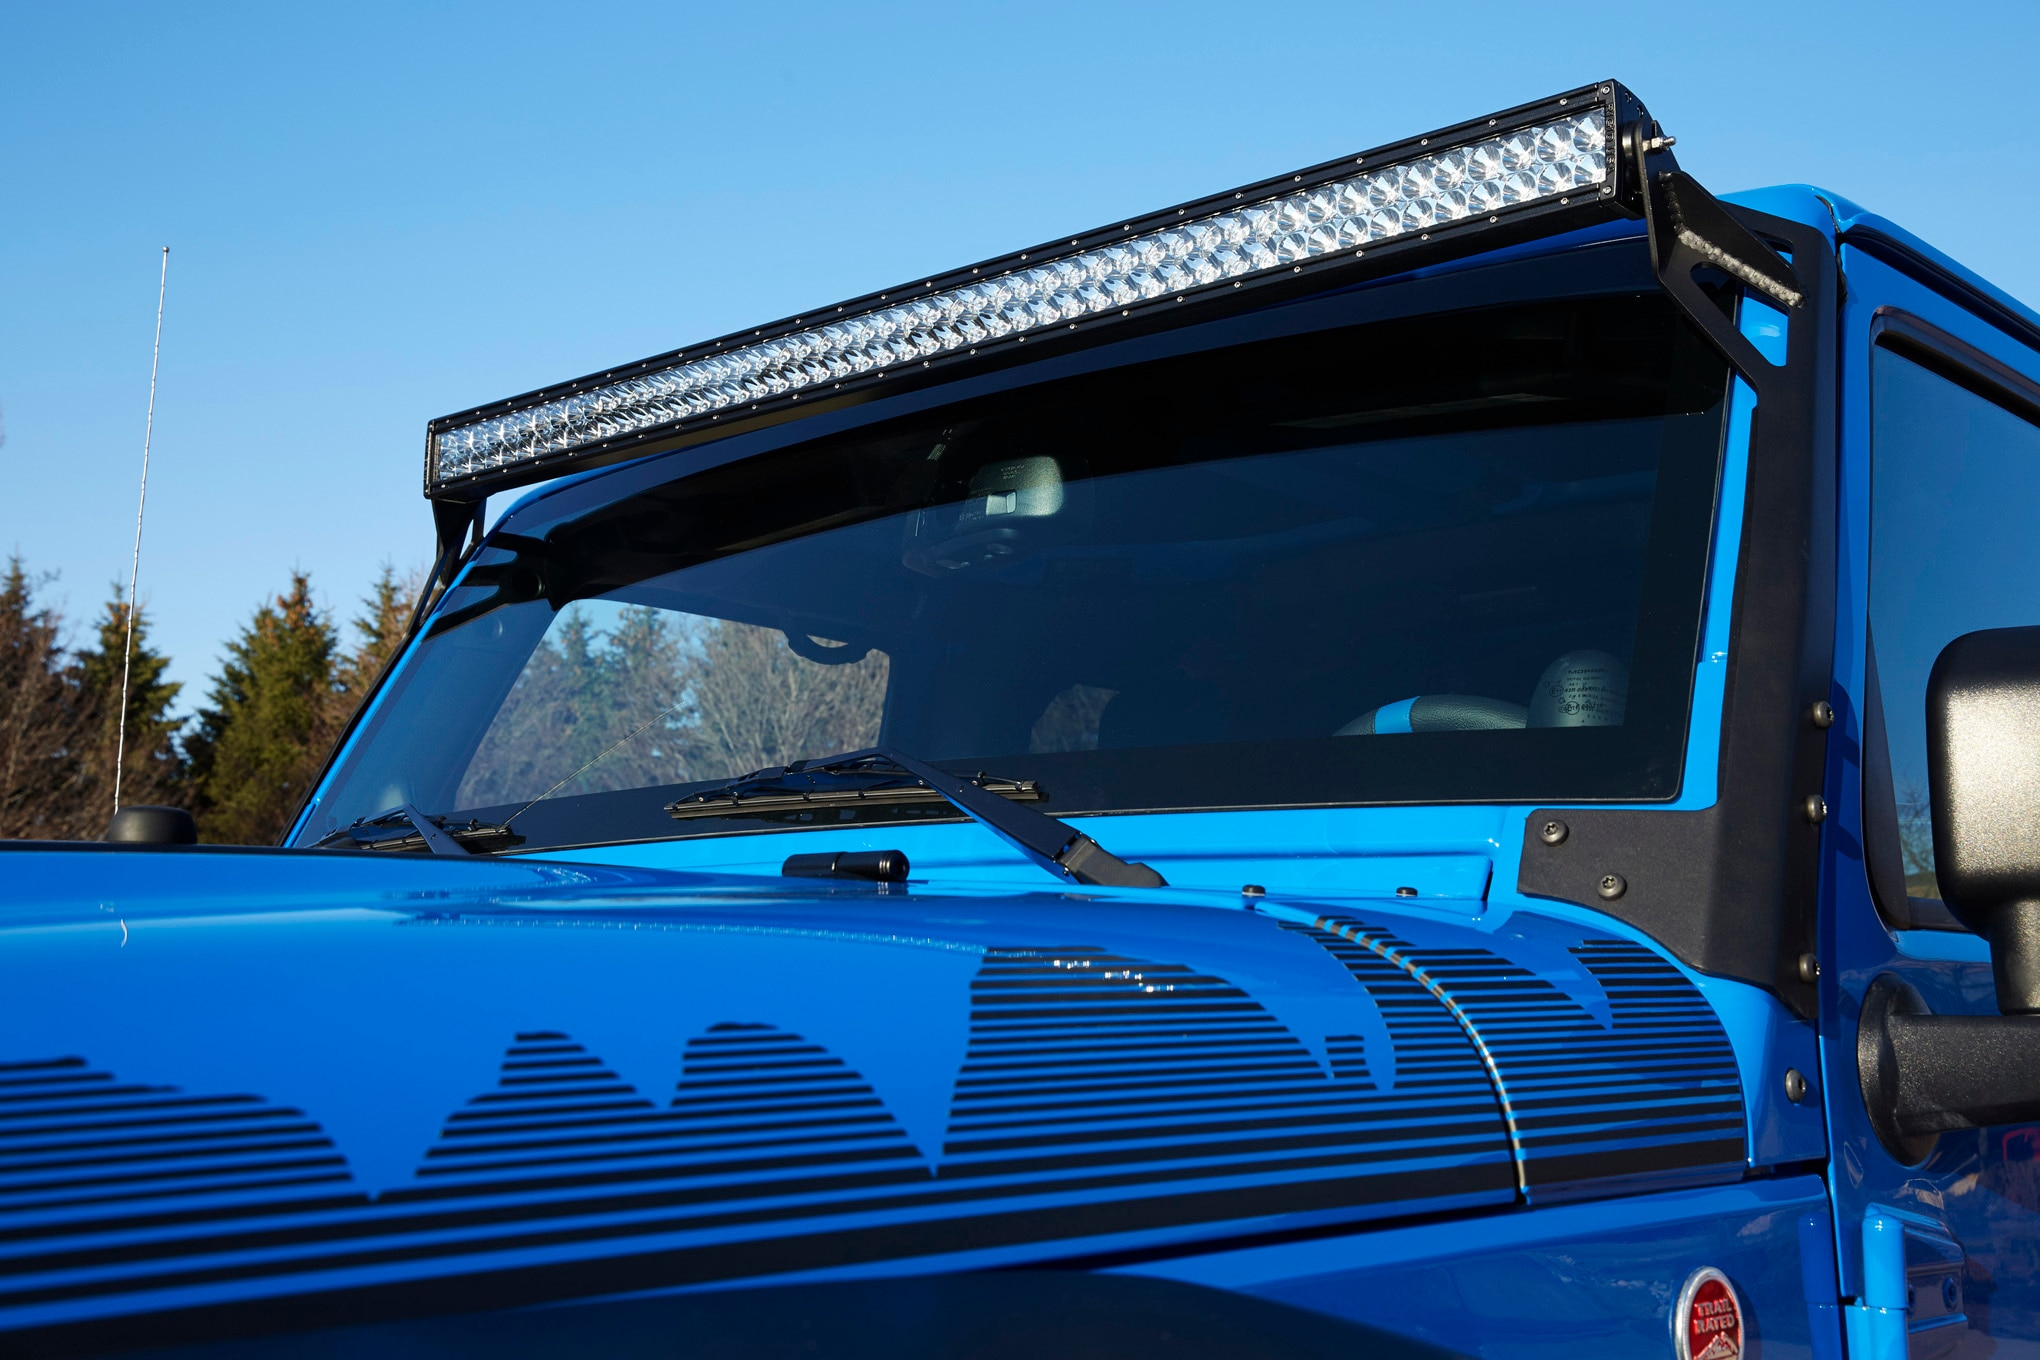 Jeep Wrangler Maximum Performance Concept LED lights